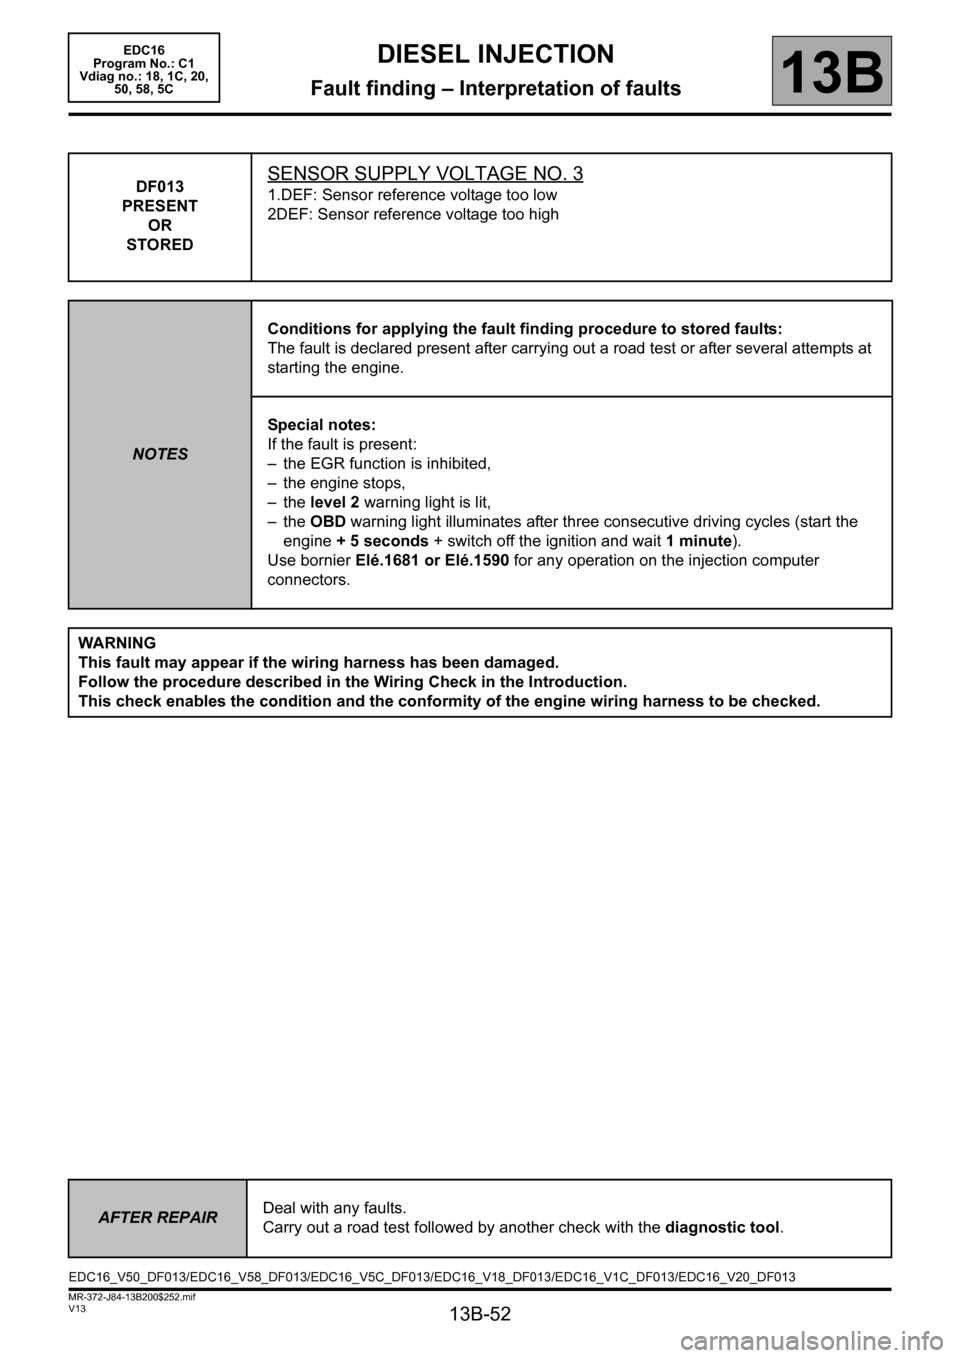 RENAULT SCENIC 2011 J95 / 3.G Engine And Peripherals EDC16 Workshop Manual, Page 52